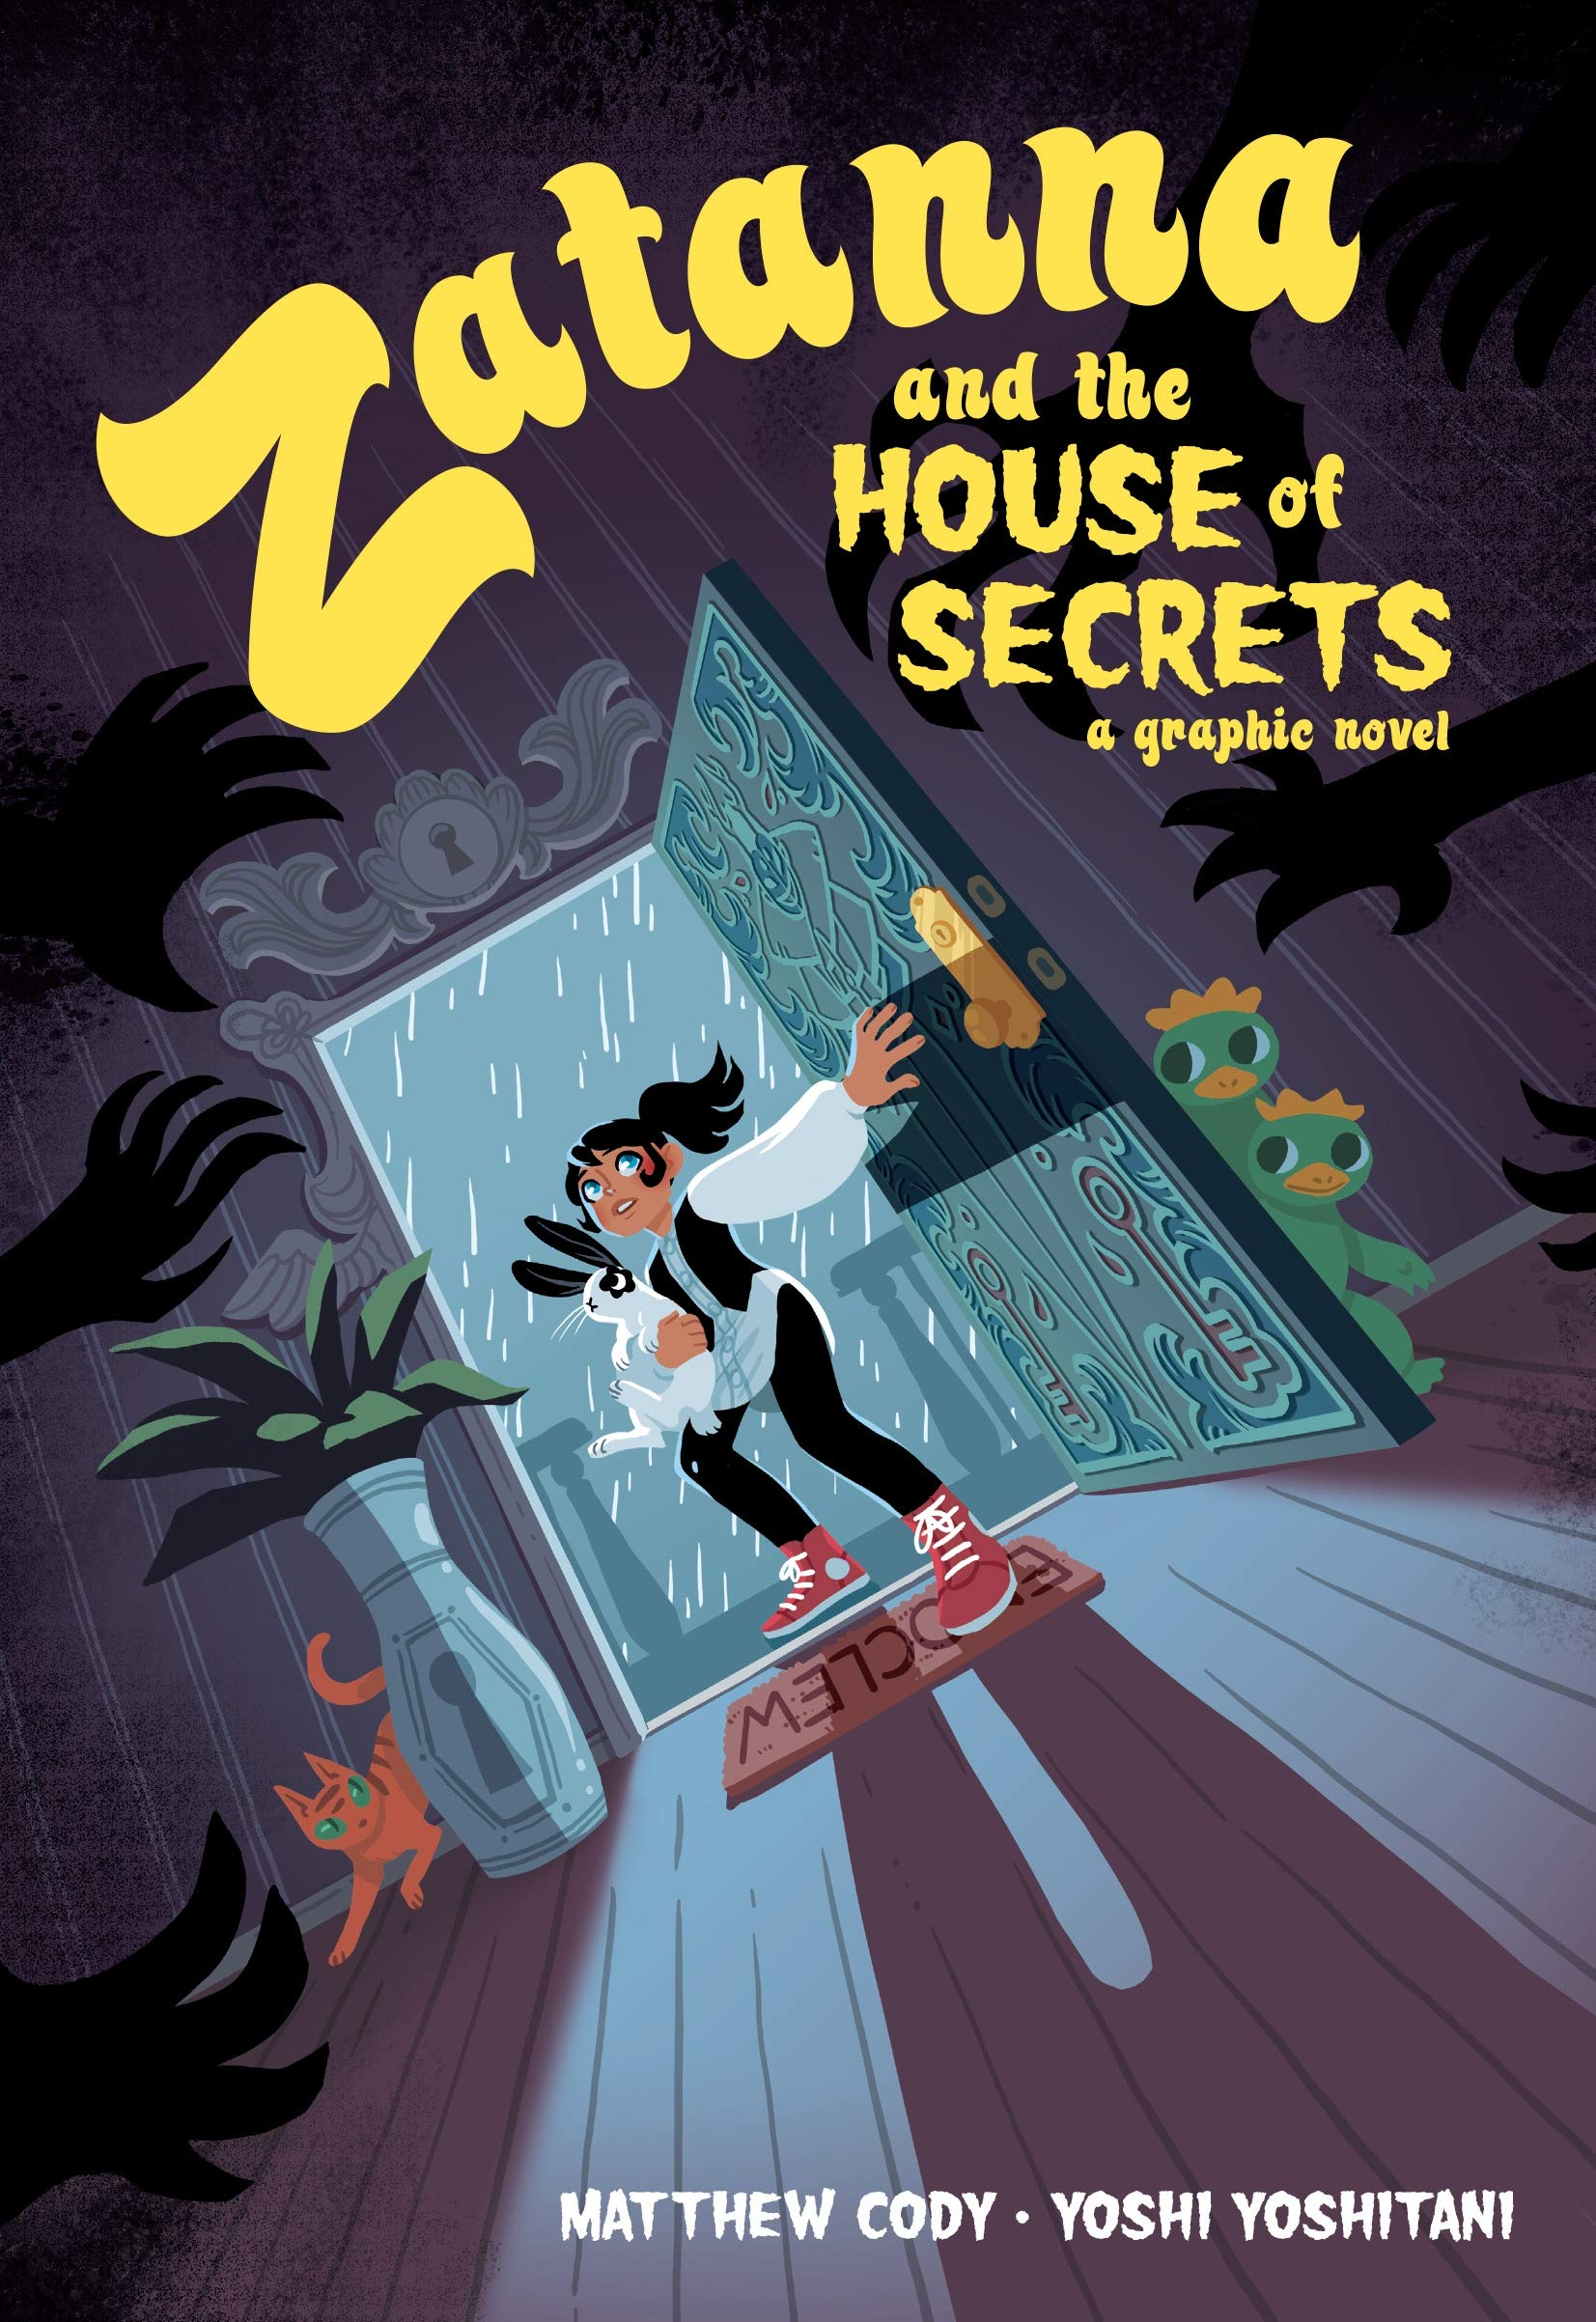 Zatanna and the House of Secrets: A Graphic Novel